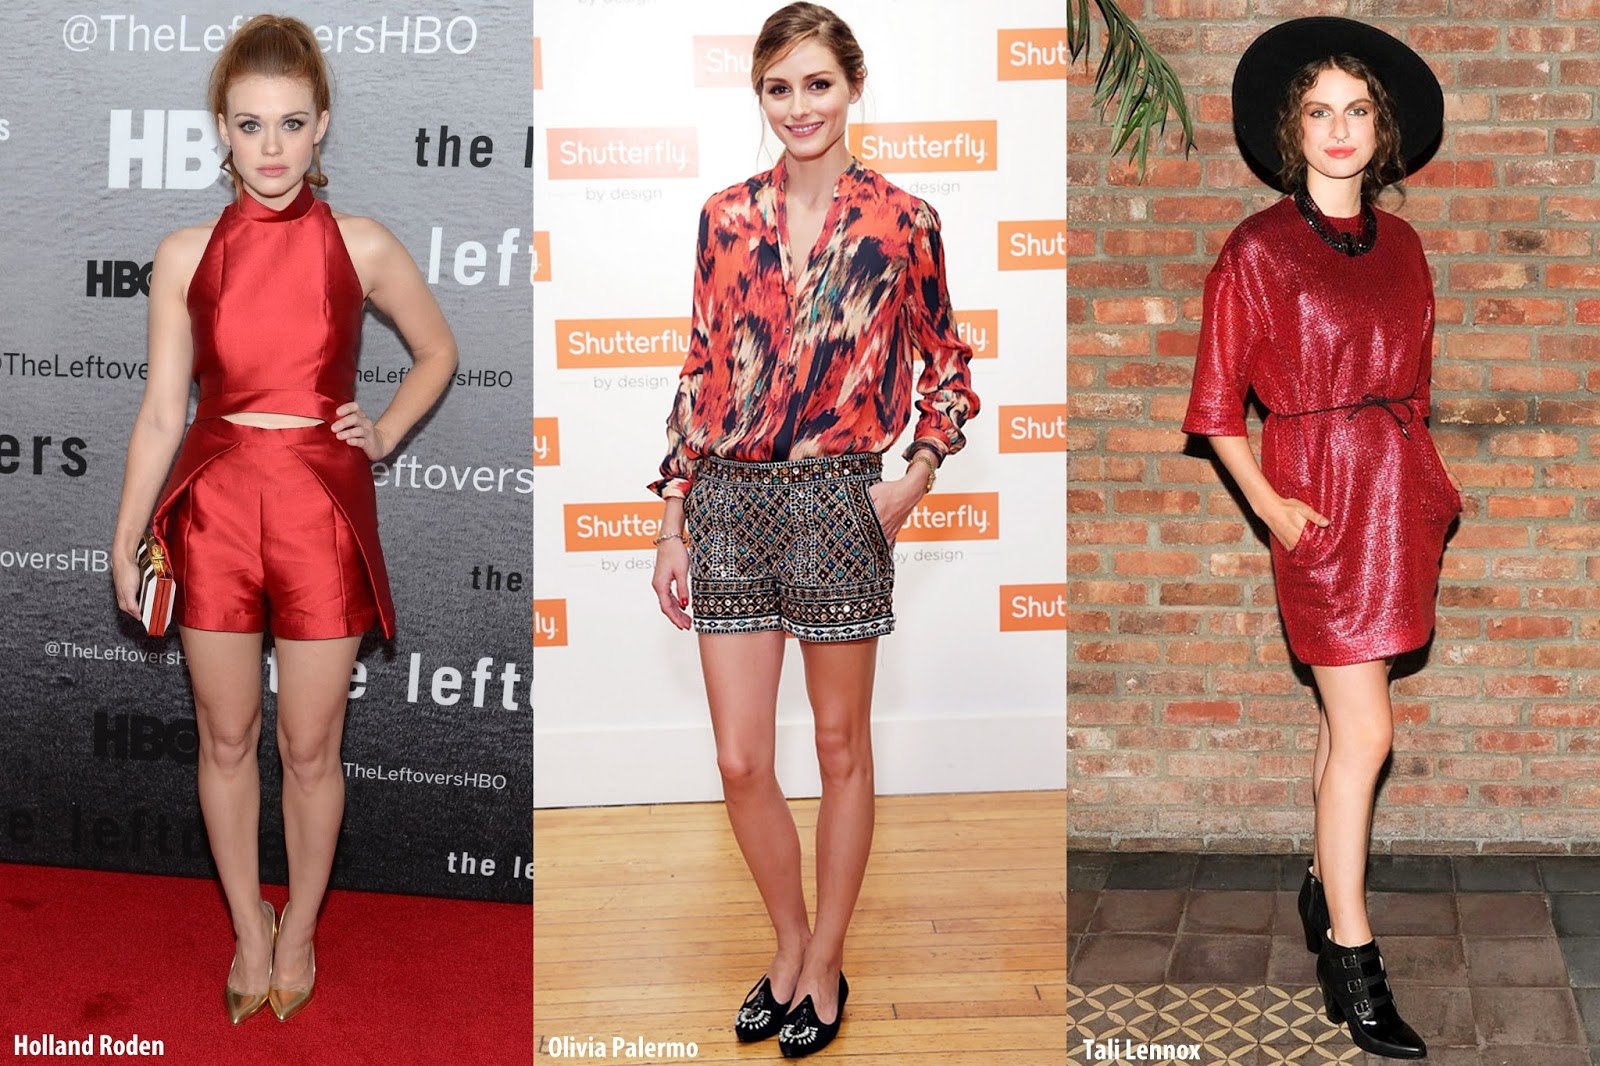 9fadf0f3726 Holland Roden rocked a ruby cropped top and shorts set by Paper London with  gold metallic Rupert Sanderson pumps. Olivia Palermo savvily mixes prints  in ...